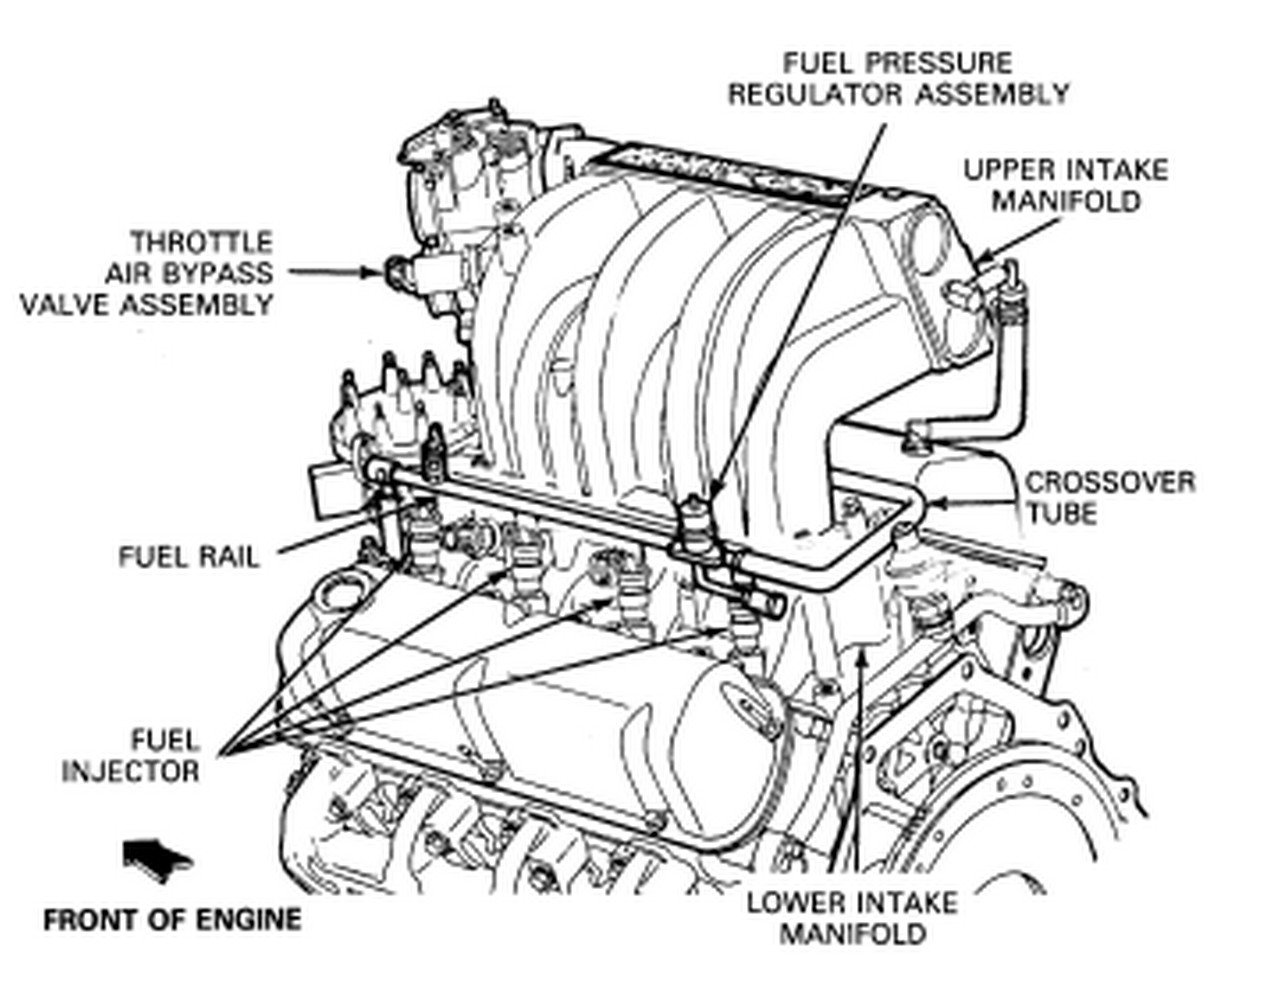 Ford Fuel Pressure Diagram : I have ford f l fuel injected start great runs